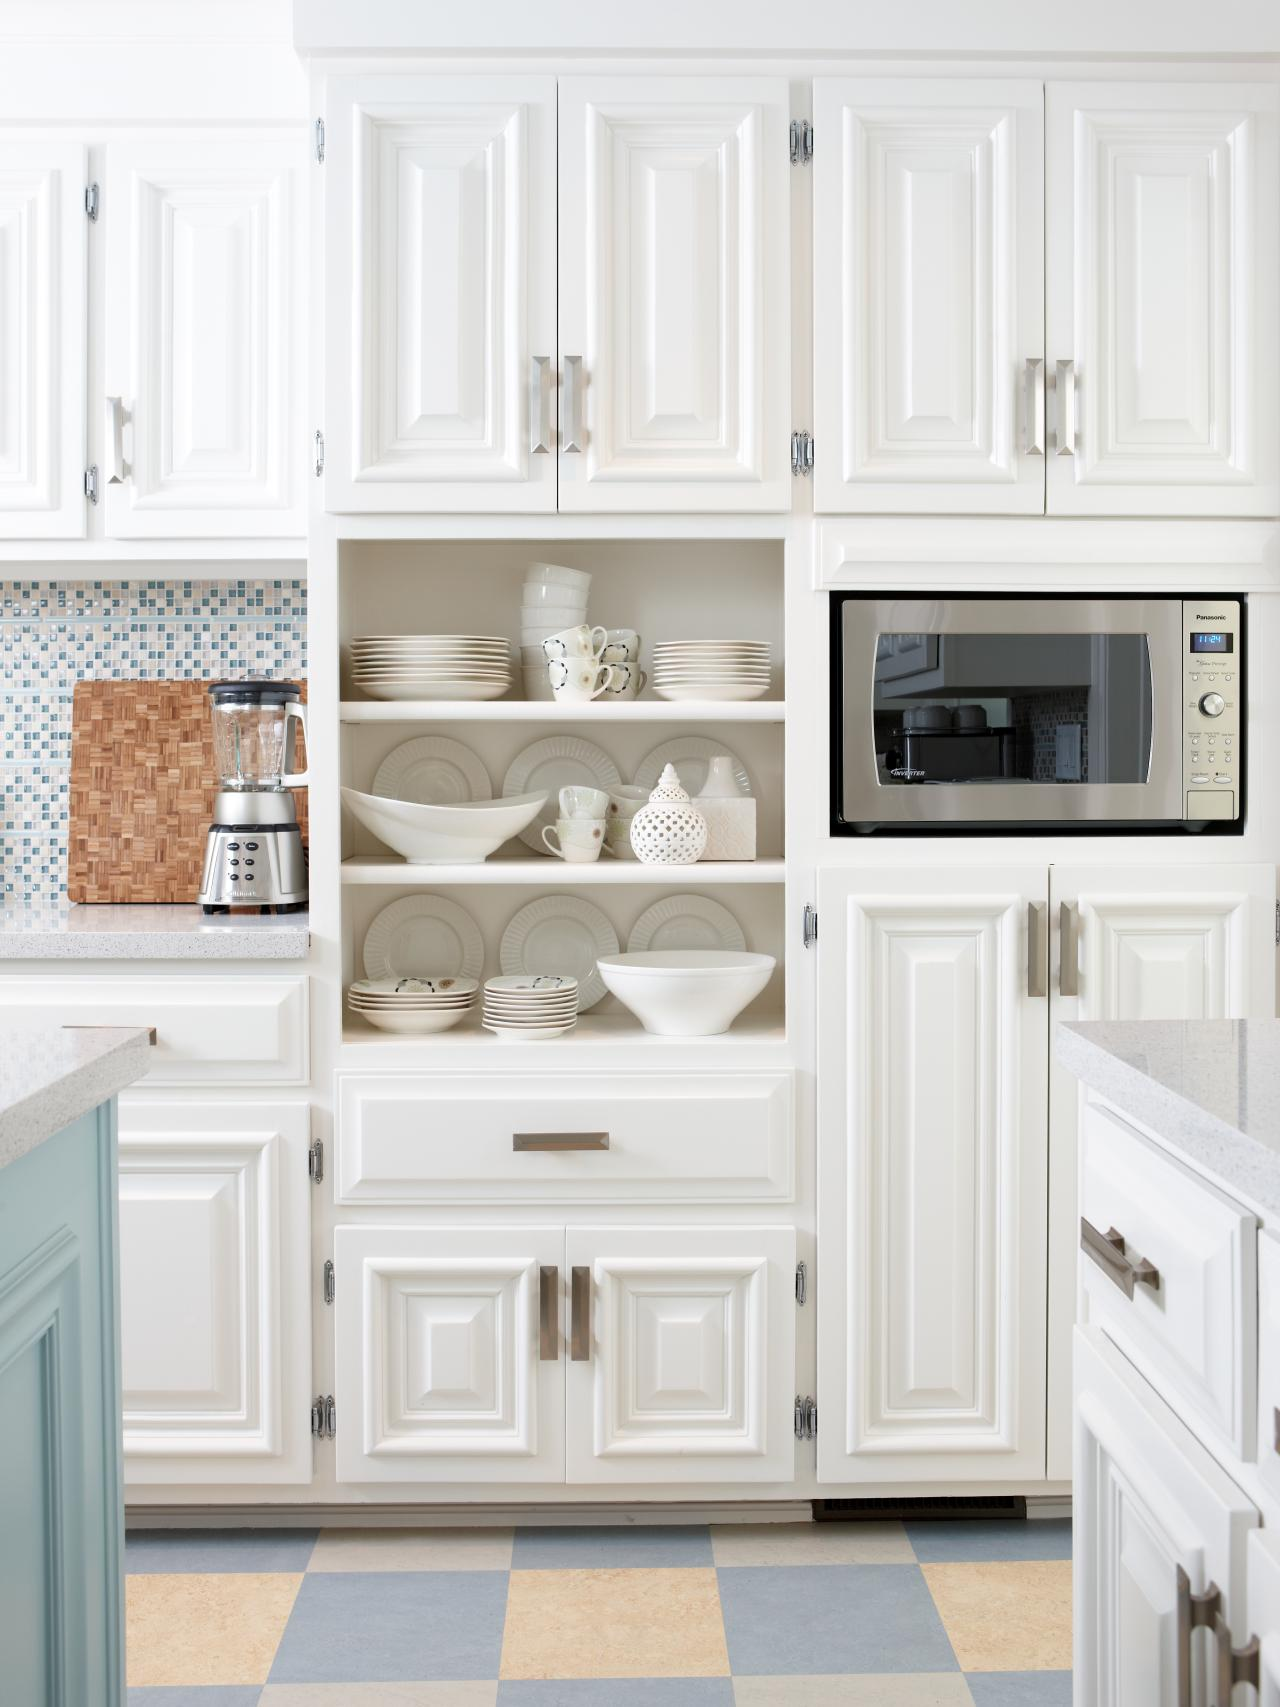 Kitchen Cabinet 10 X 10 Semi Custom Kitchen Cabinets Pictures And Ideas From Hgtv